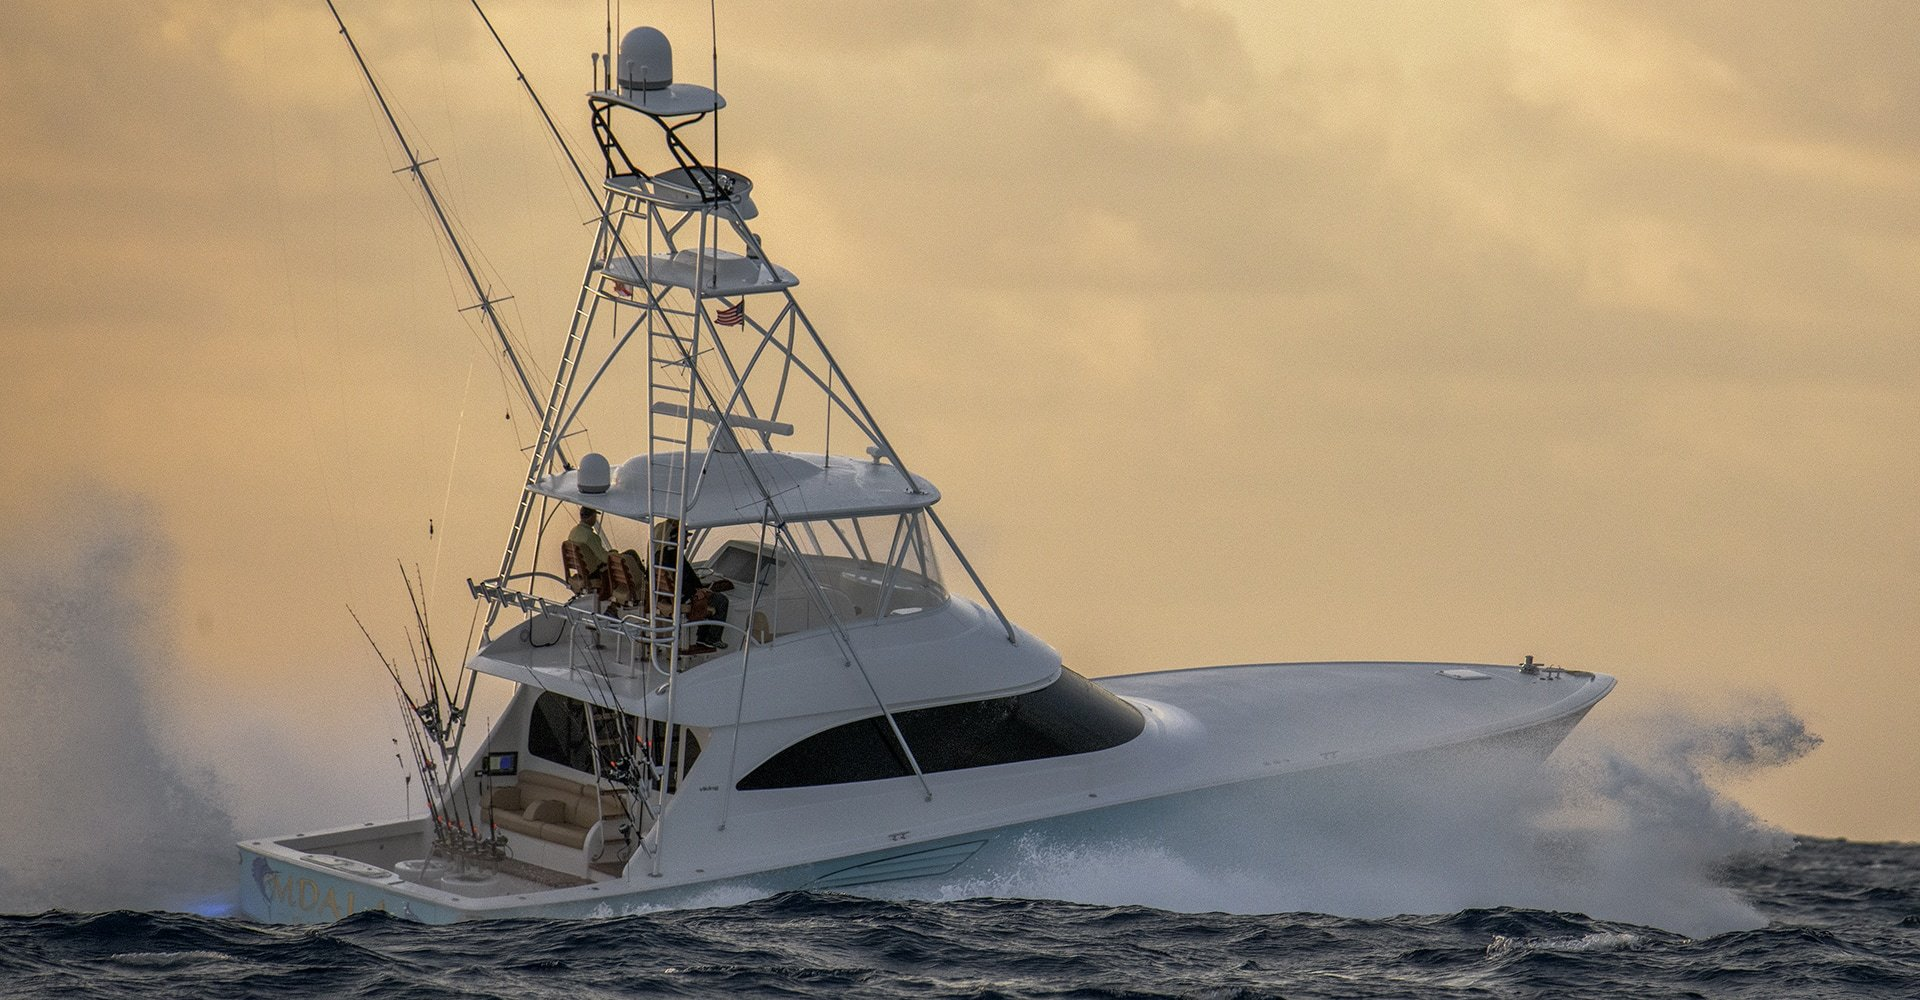 Viking Sportfish In Florida